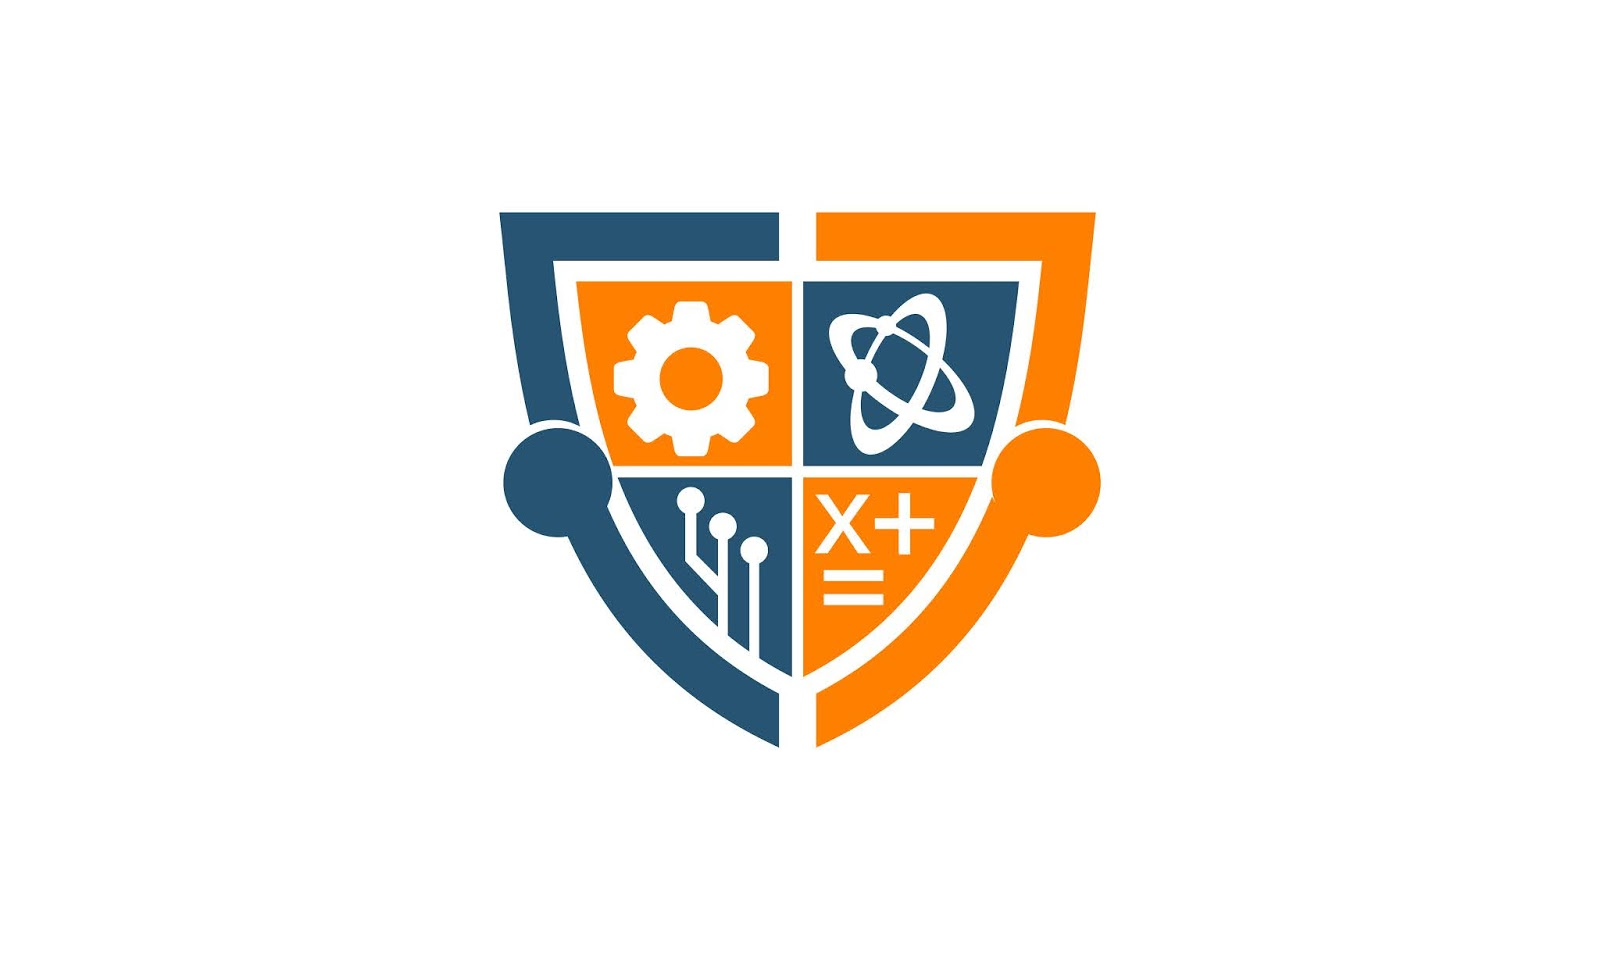 Technology Science Study Shield Support	 Free Download Vector CDR, AI, EPS and PNG Formats